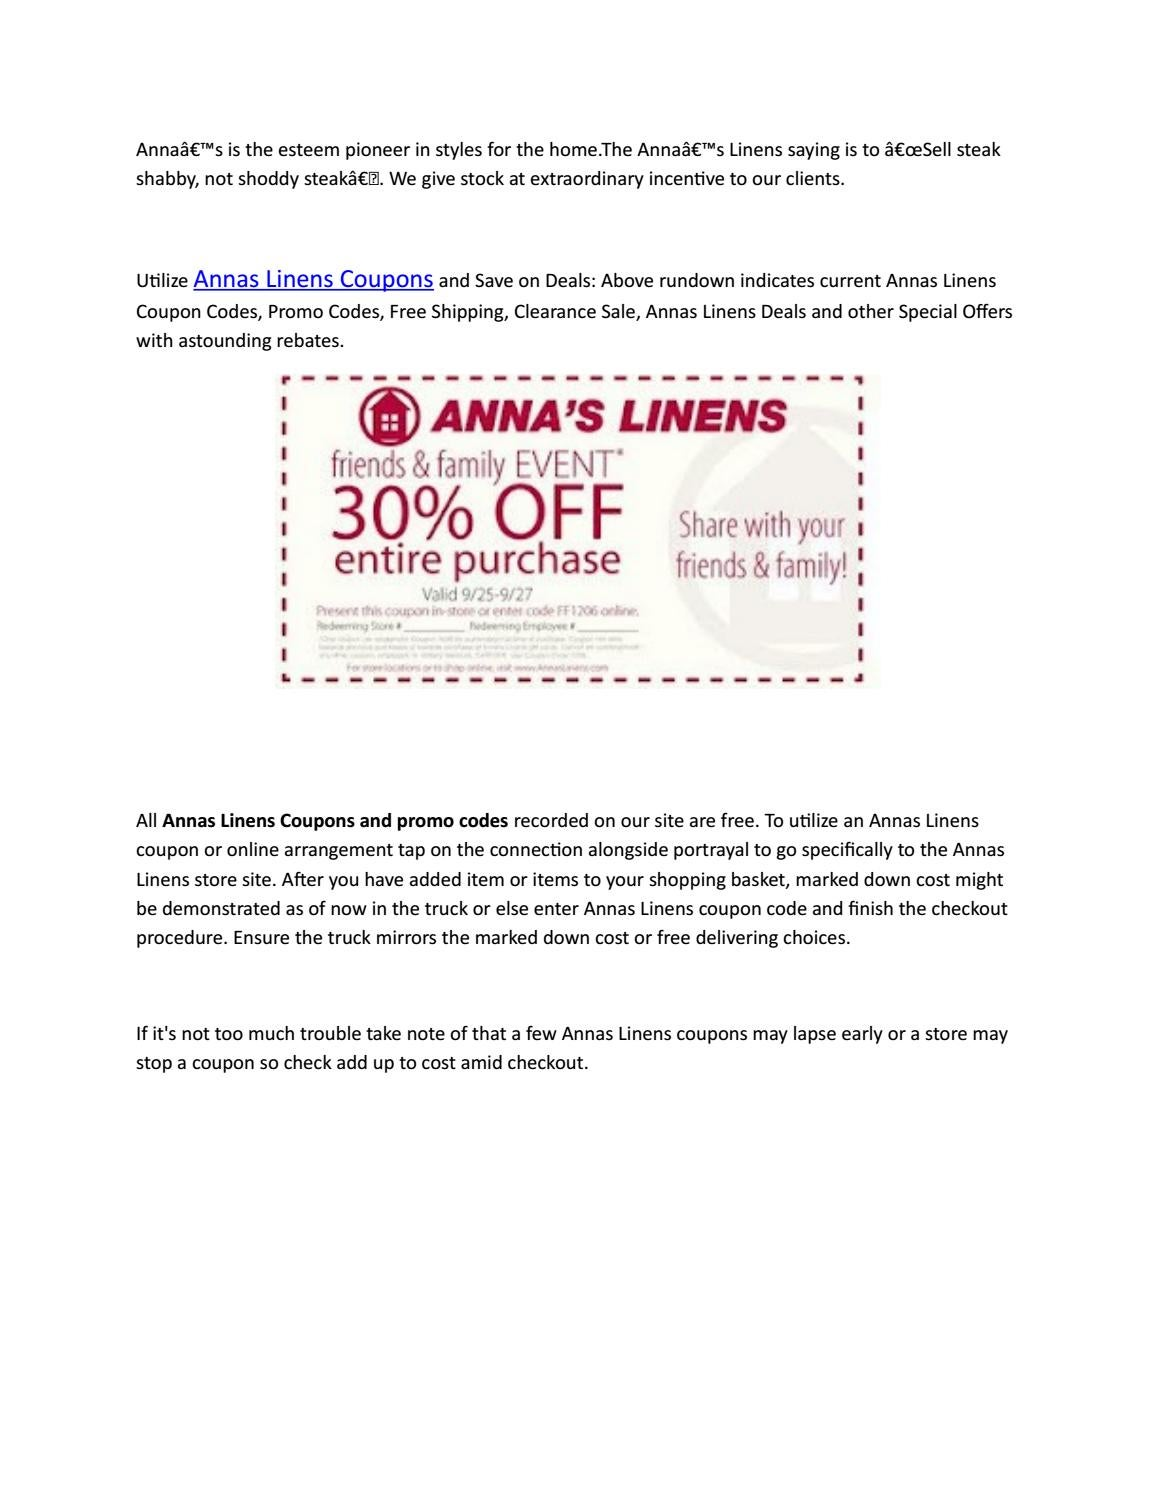 annas linens in store coupons